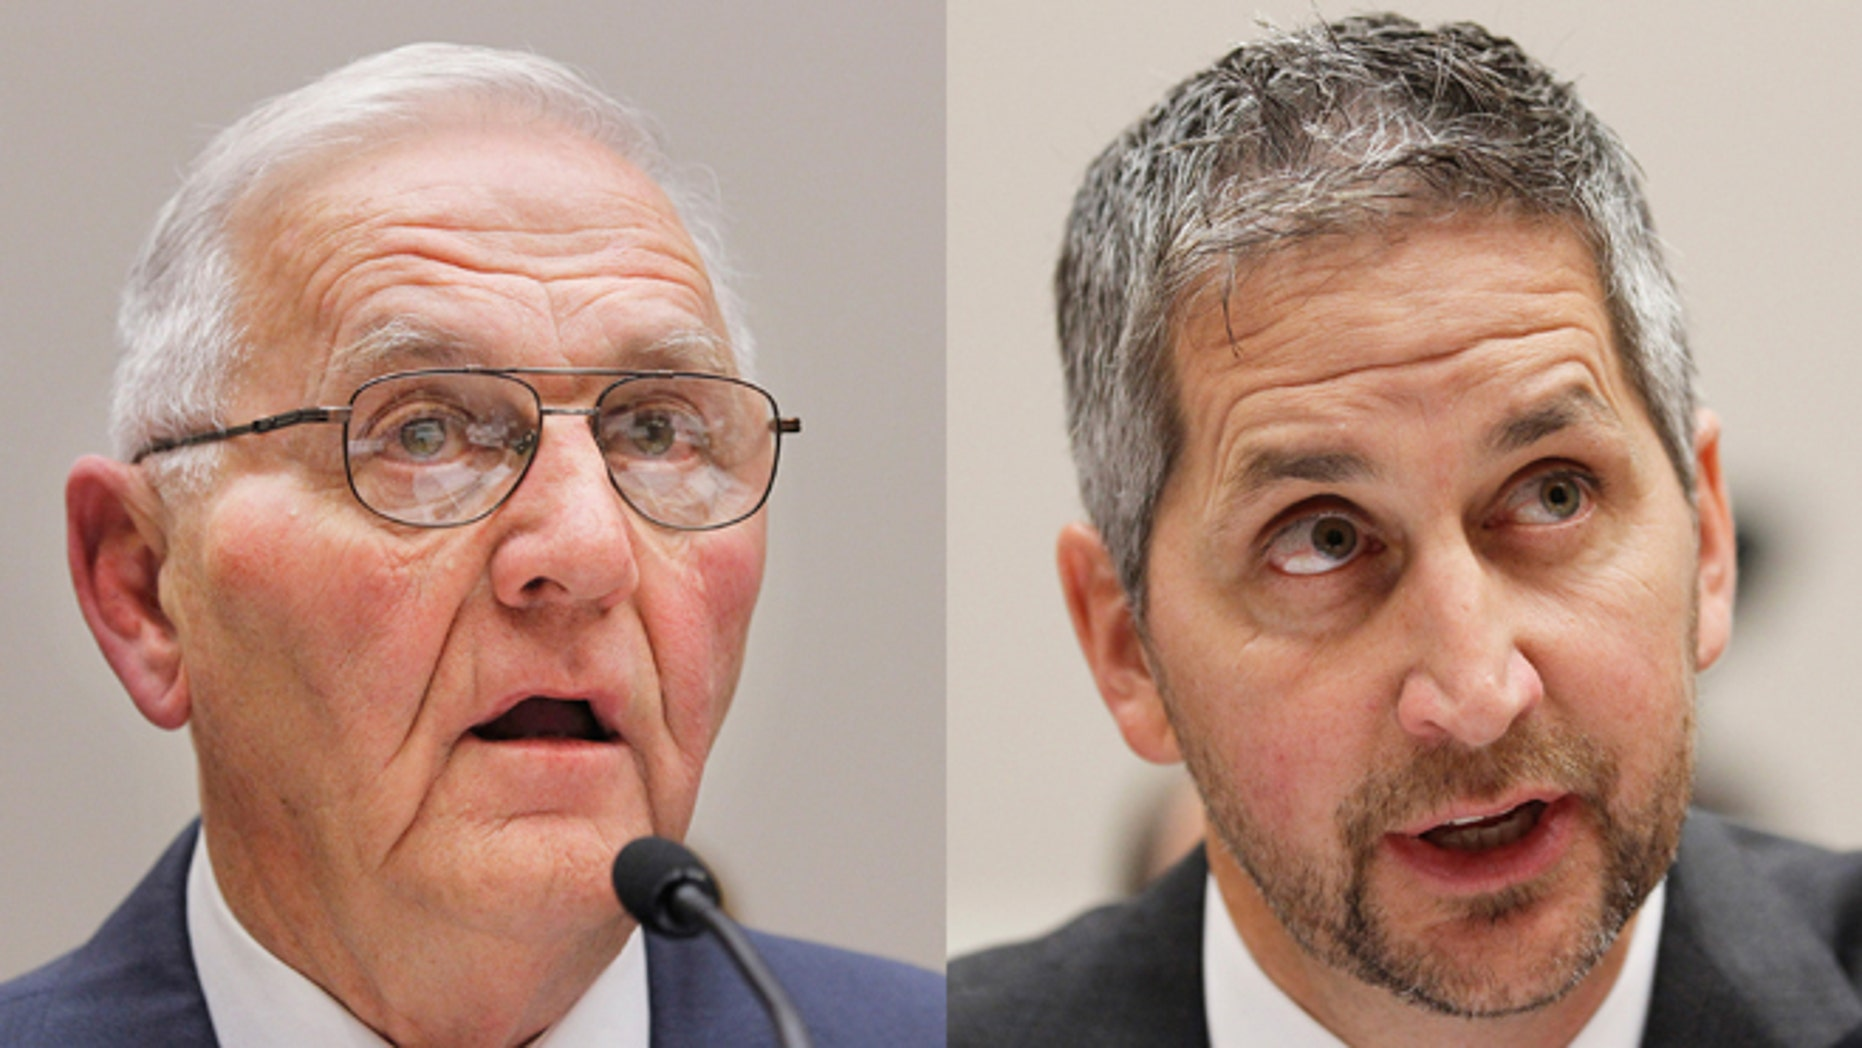 This Sept. 22, 2010 combination of file photos shows Quality Egg LLC owner Austin Jack DeCoster, left, and its chief operating officer, Peter DeCoster on Capitol Hill in Washington. (AP)